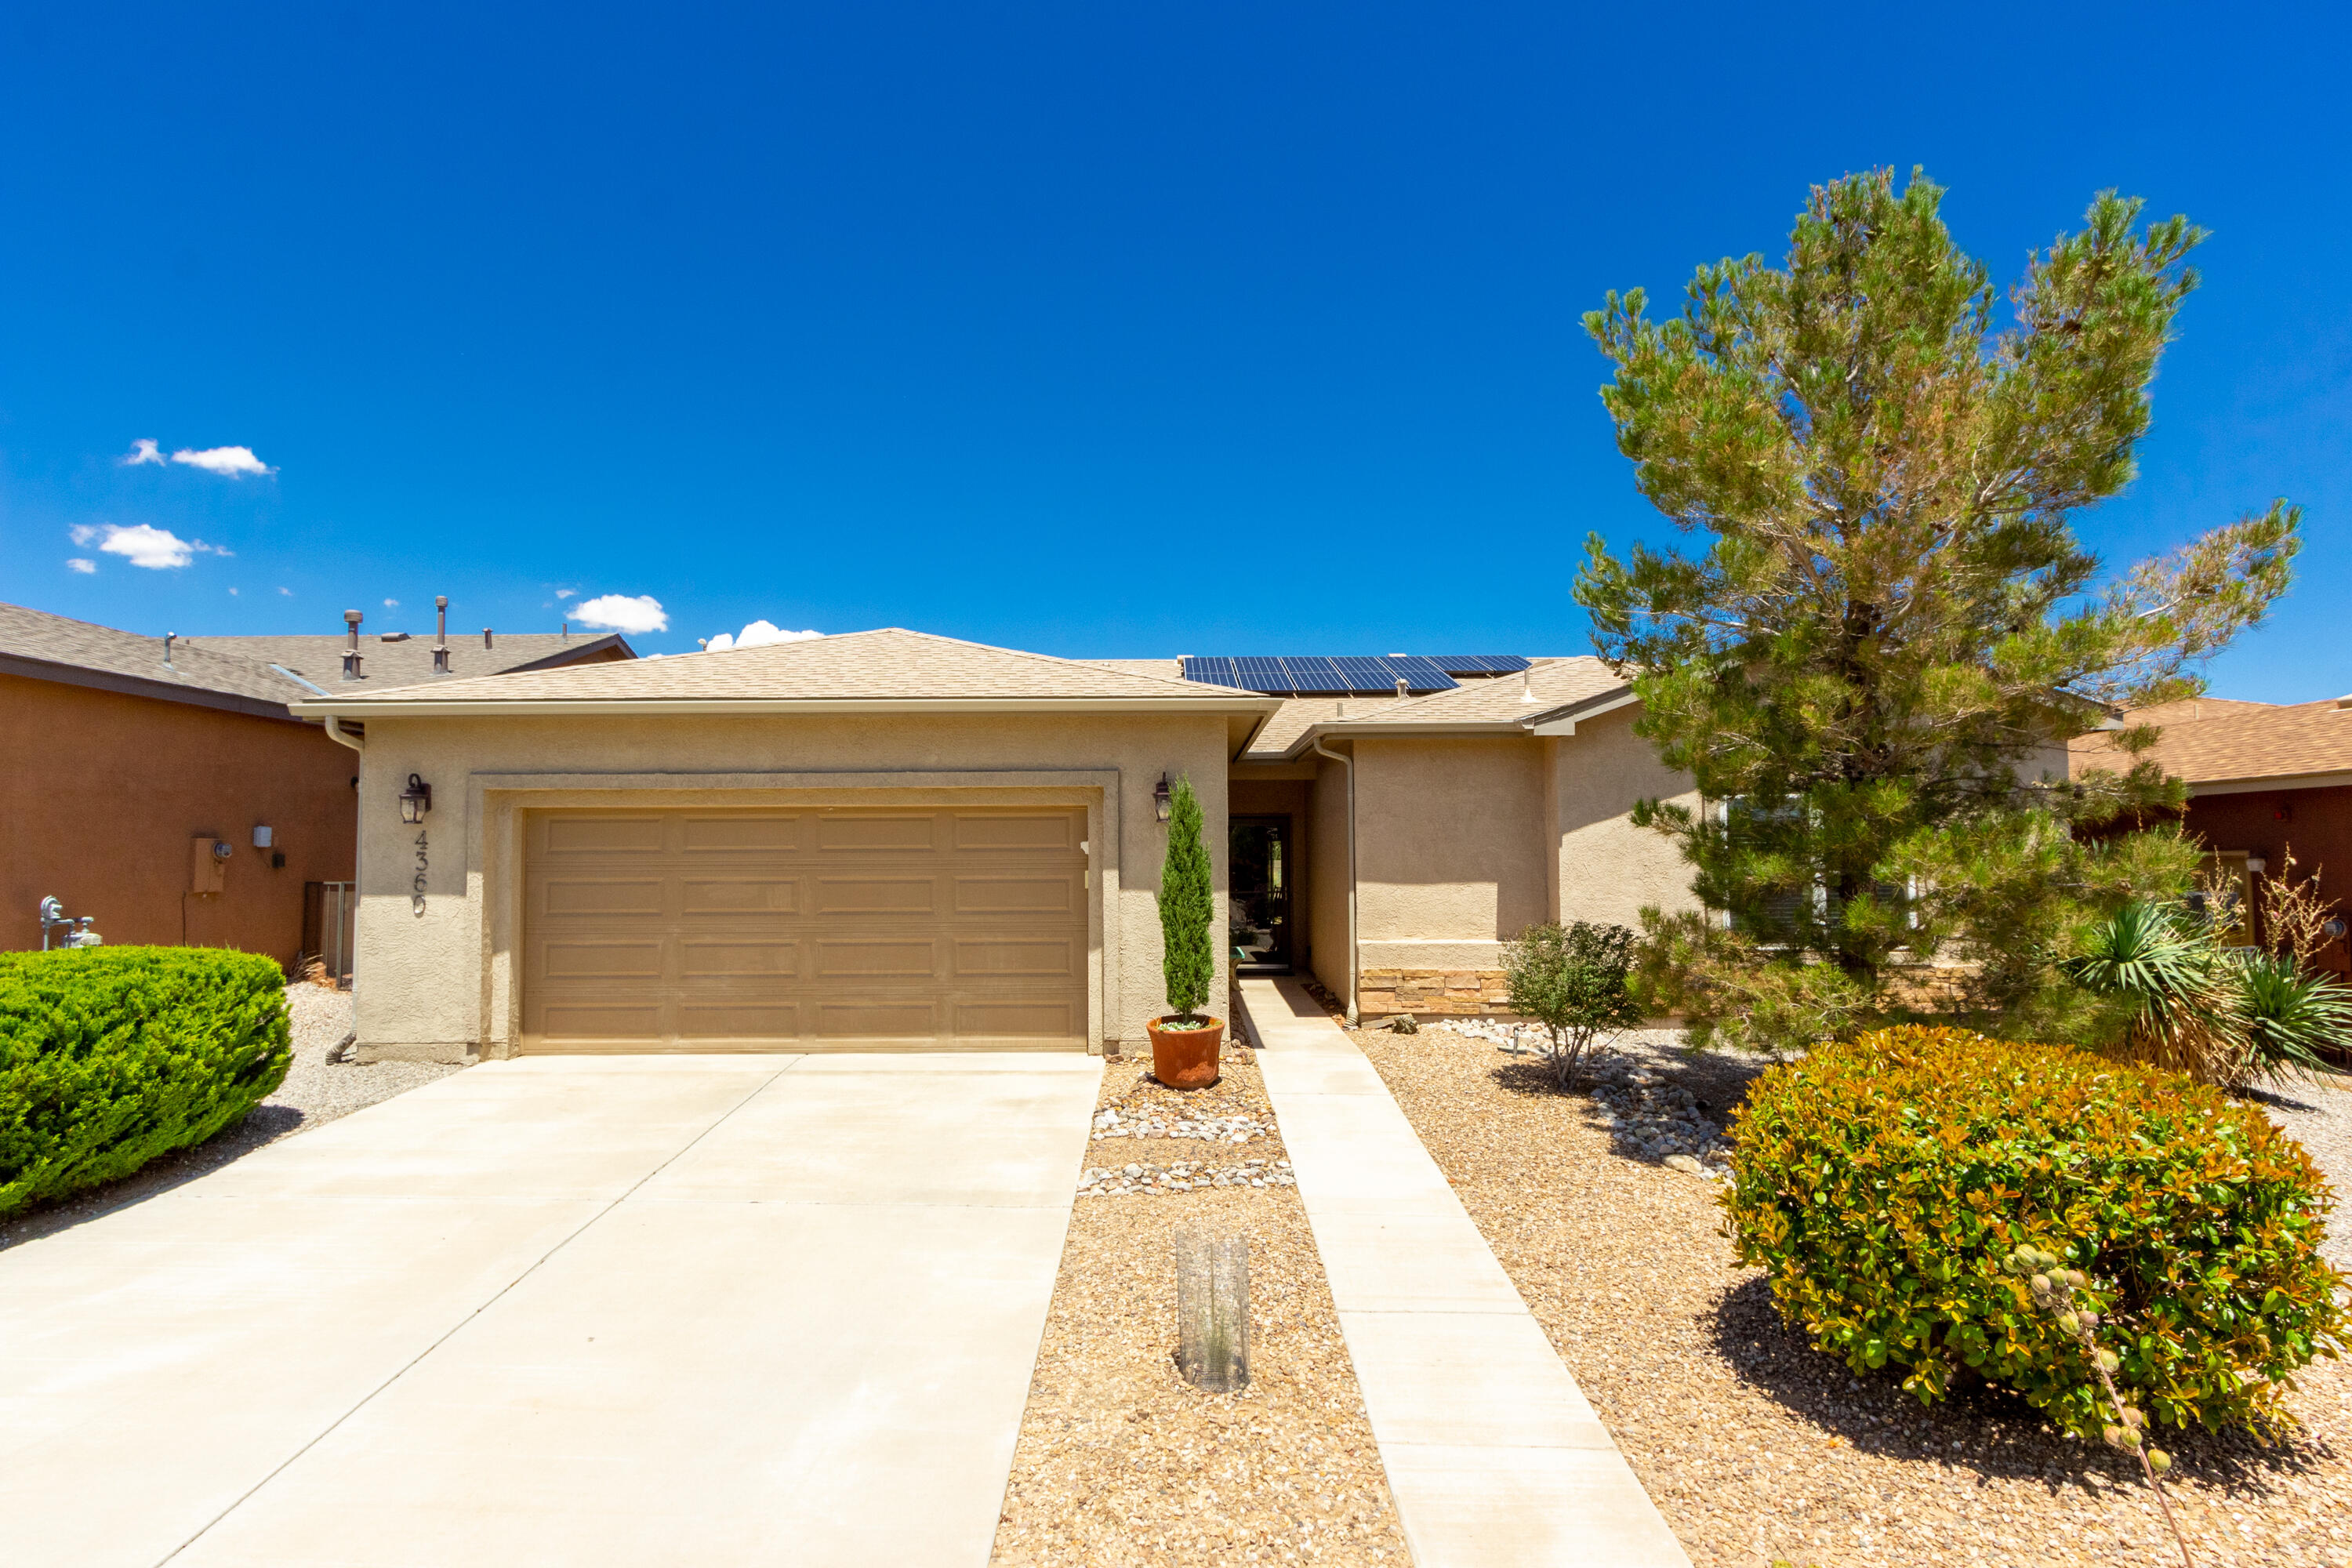 What a great location close to the clubhouse & other amenities for this wonderful home! With mature landscaping (the back yard is absolutely gorgeous!!), window coverings, upgrades & owned solar (super low electric bill) why wait to build? This spacious 1949 sq. ft. plan (Taos floorplan) is a split plan w/HUGE bedrooms....all 3 of them! The 2-car garage is oversized as well. Master bath cabs are so SW tastefully done & gorgeous mirror above.  Fireplace, pendant lights over the hi-bar, added can lights, walk-in showers in both baths, ceiling fans in all rooms, Murphy Bed, window coverings, and the fully landscaped LUSH back yard are all conveniently there to save you work & $$.  So lovingly maintained...it looks like new! So very affordably priced, especially considering electric savings!!